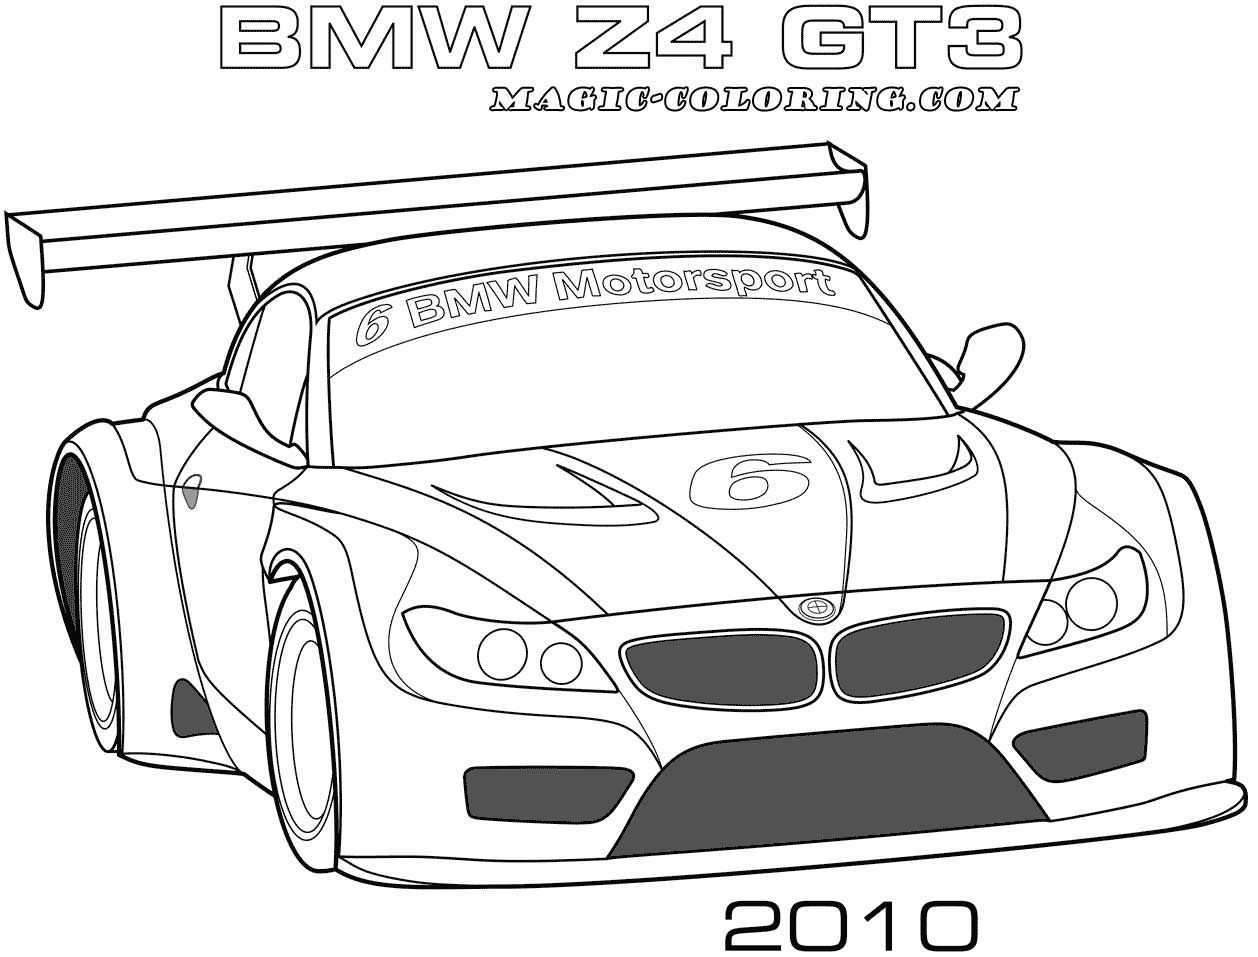 2010 Bmw Z4 Gt3 Coloring Page Cars Coloring Pages Bmw Z4 Race Car Coloring Pages